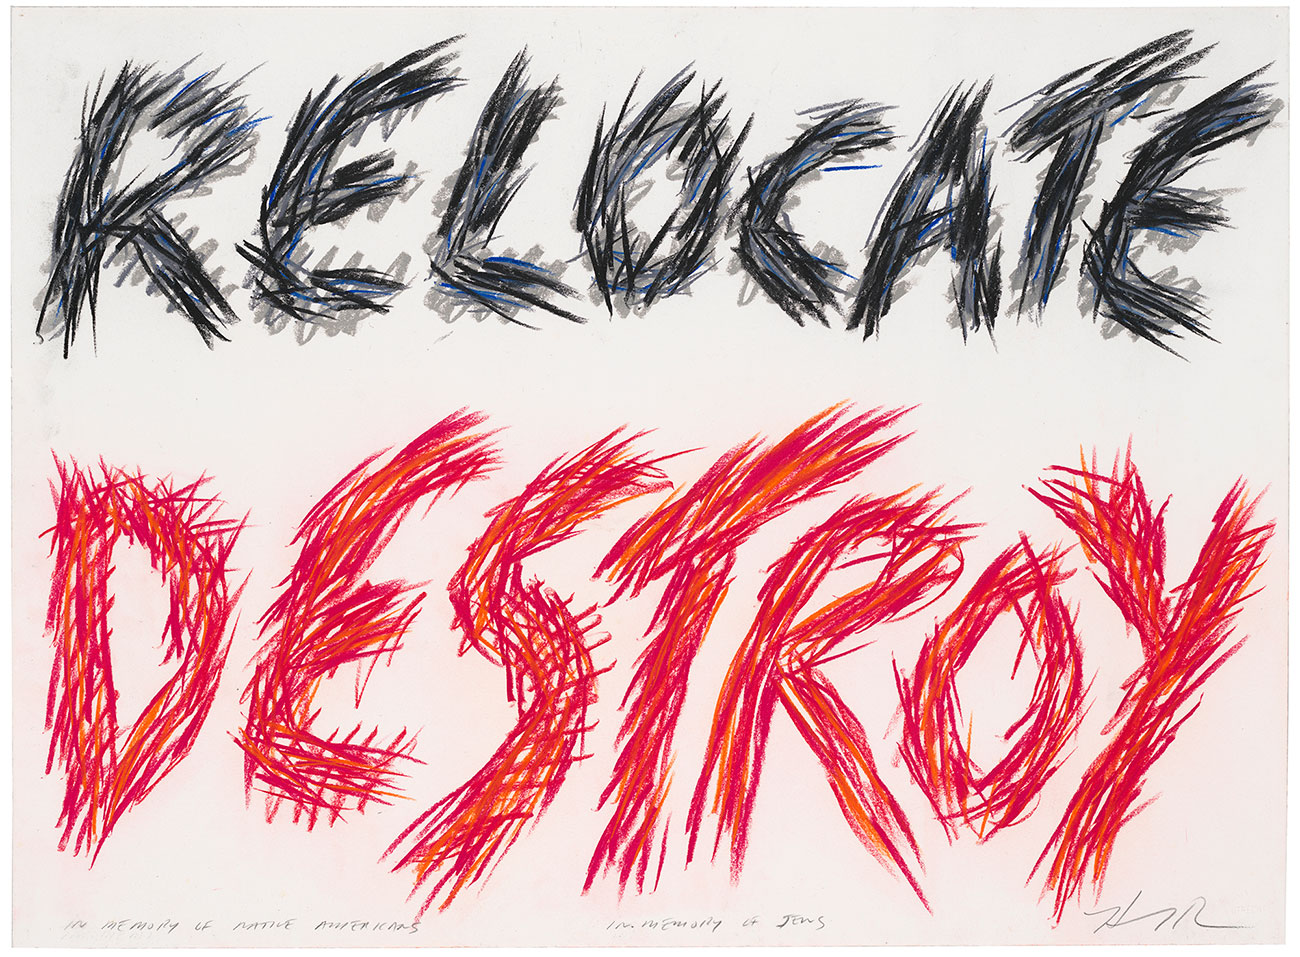 An Incomplete History of Protest at Whitney